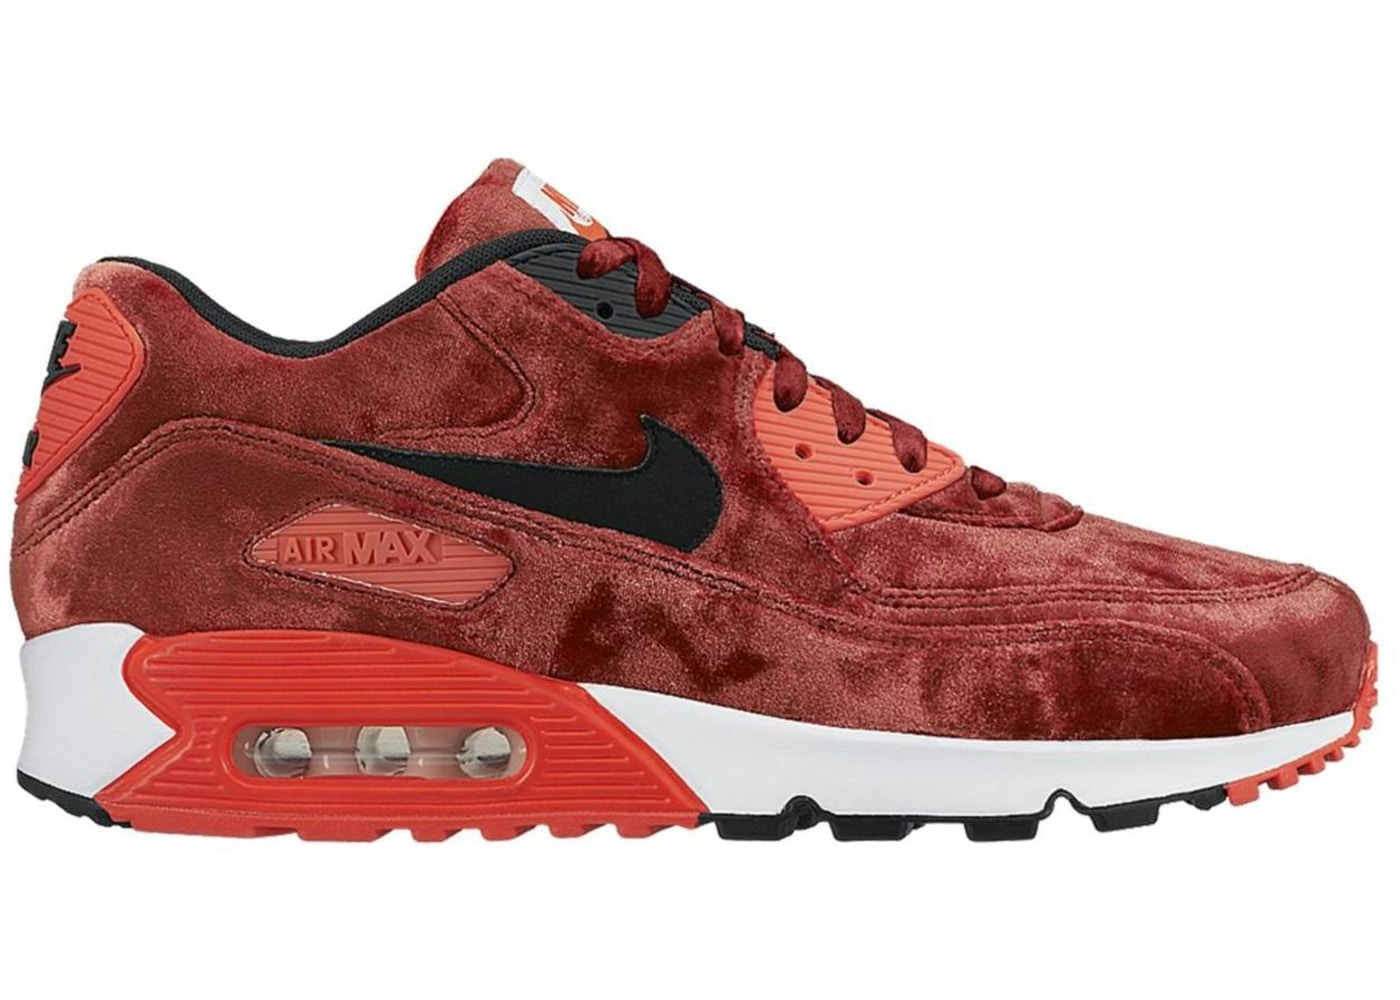 separation shoes 66fc4 1c76a Air Max 90 Red Velvet